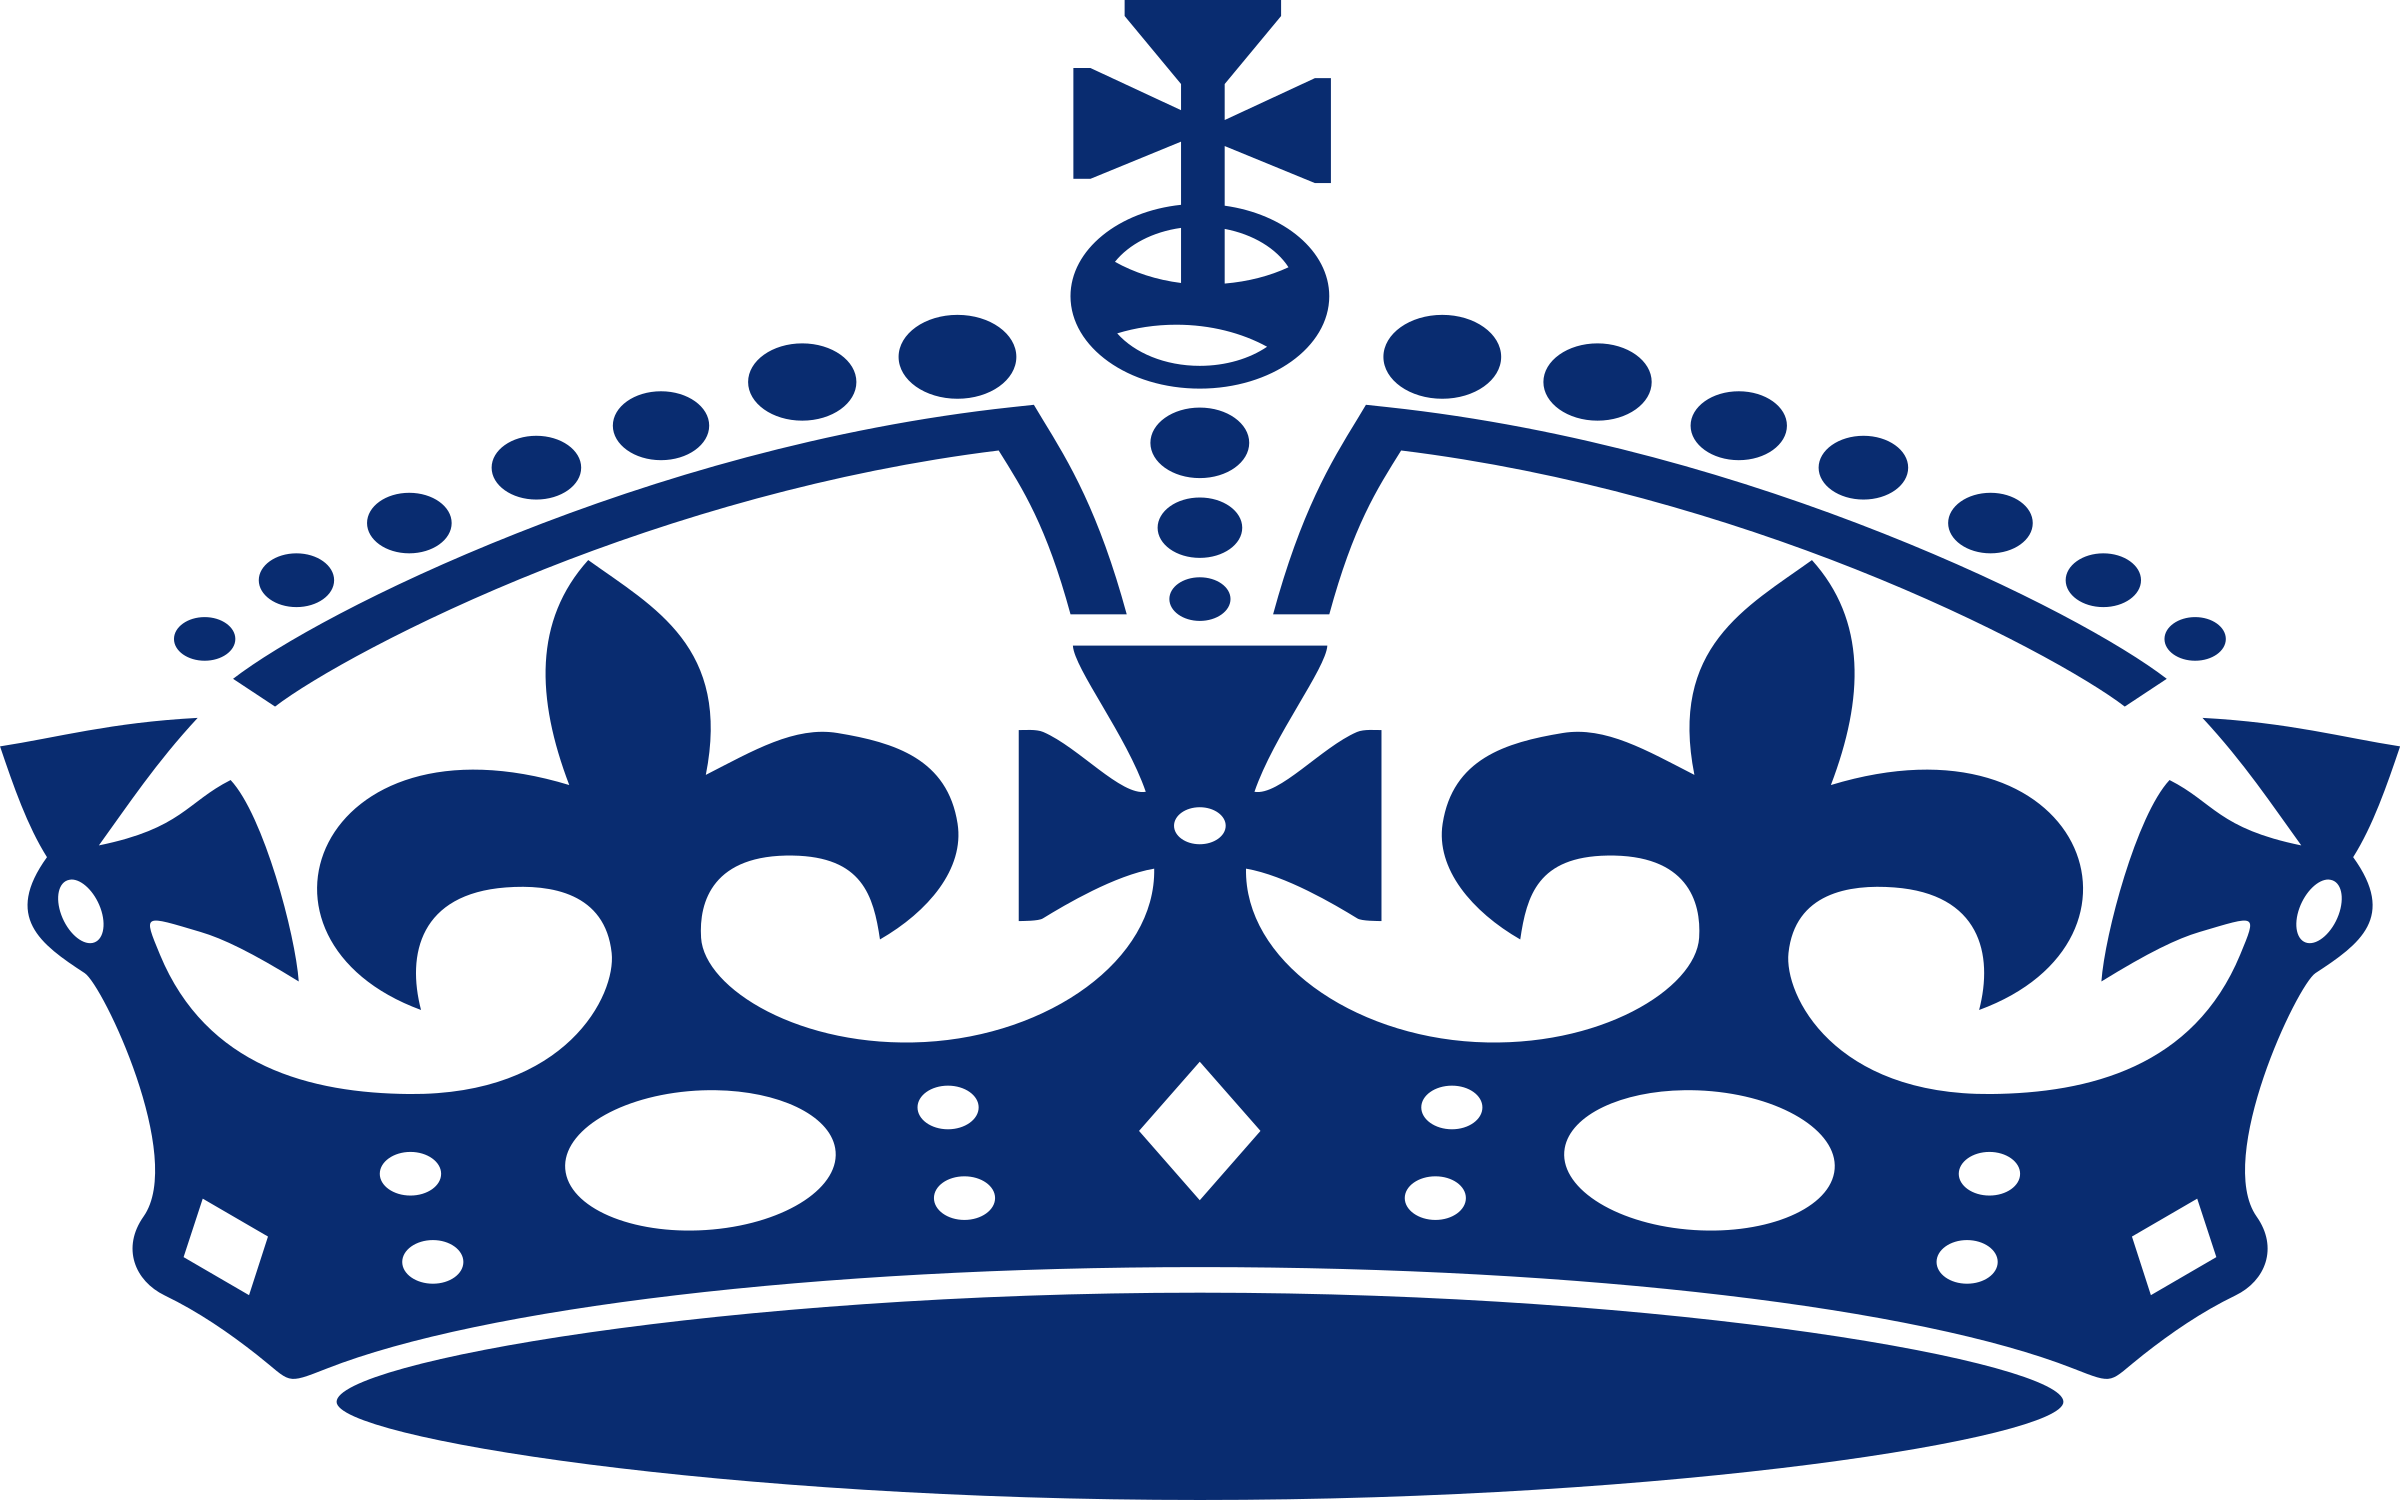 Blue crown png. Jubilee icons free and